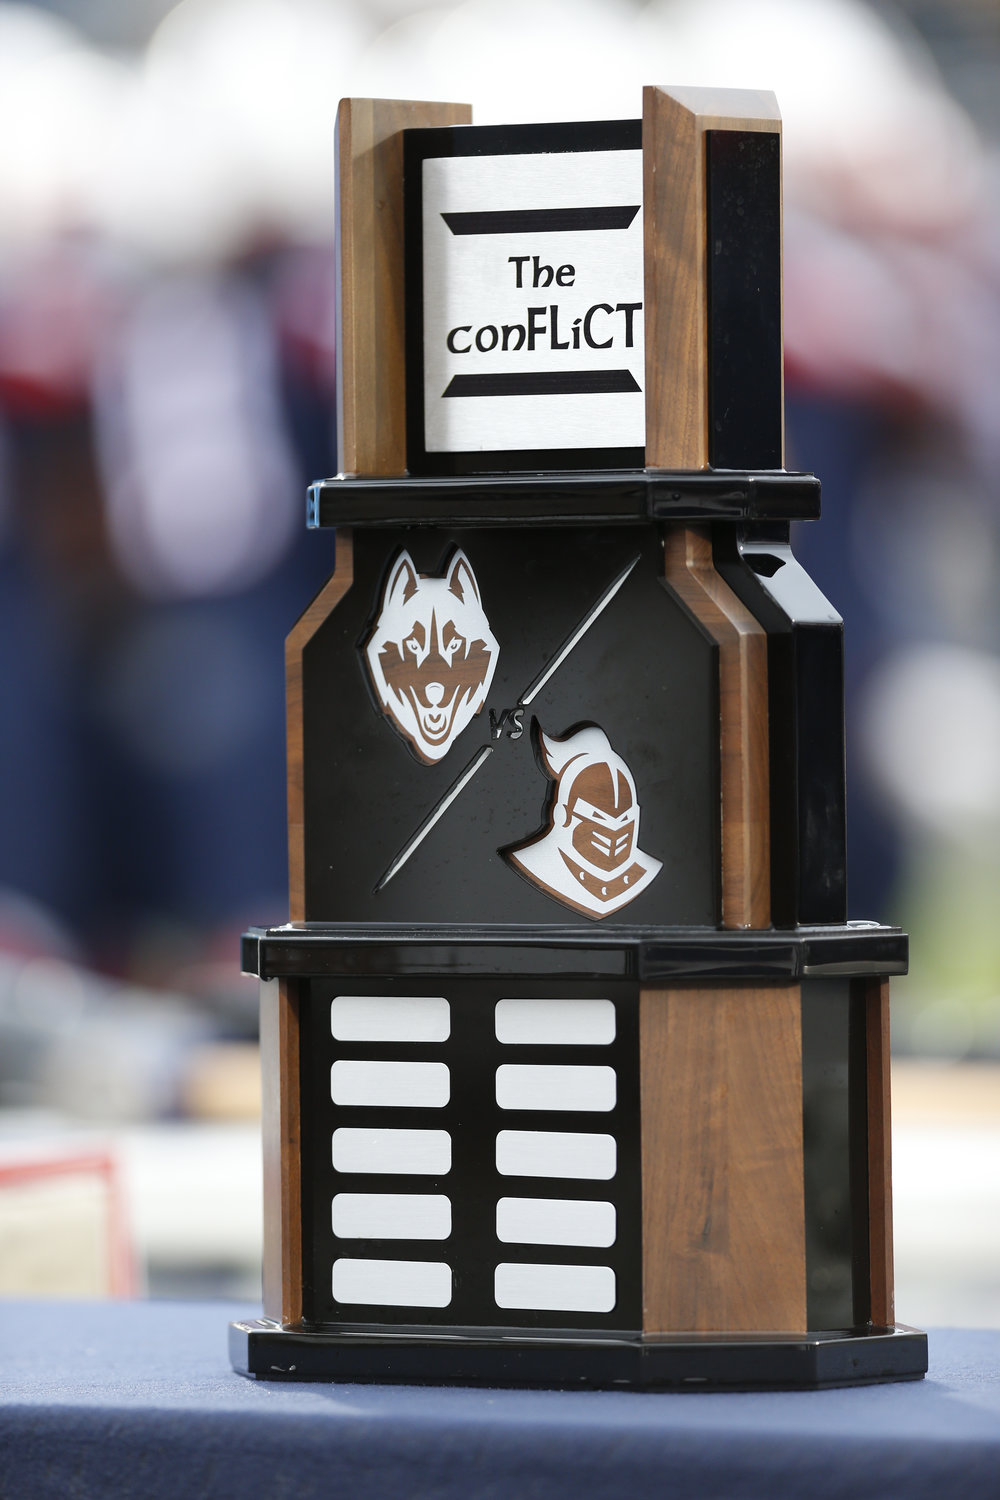 The Civil Conflict trophy. (Tyler Benton/The Daily Campus)